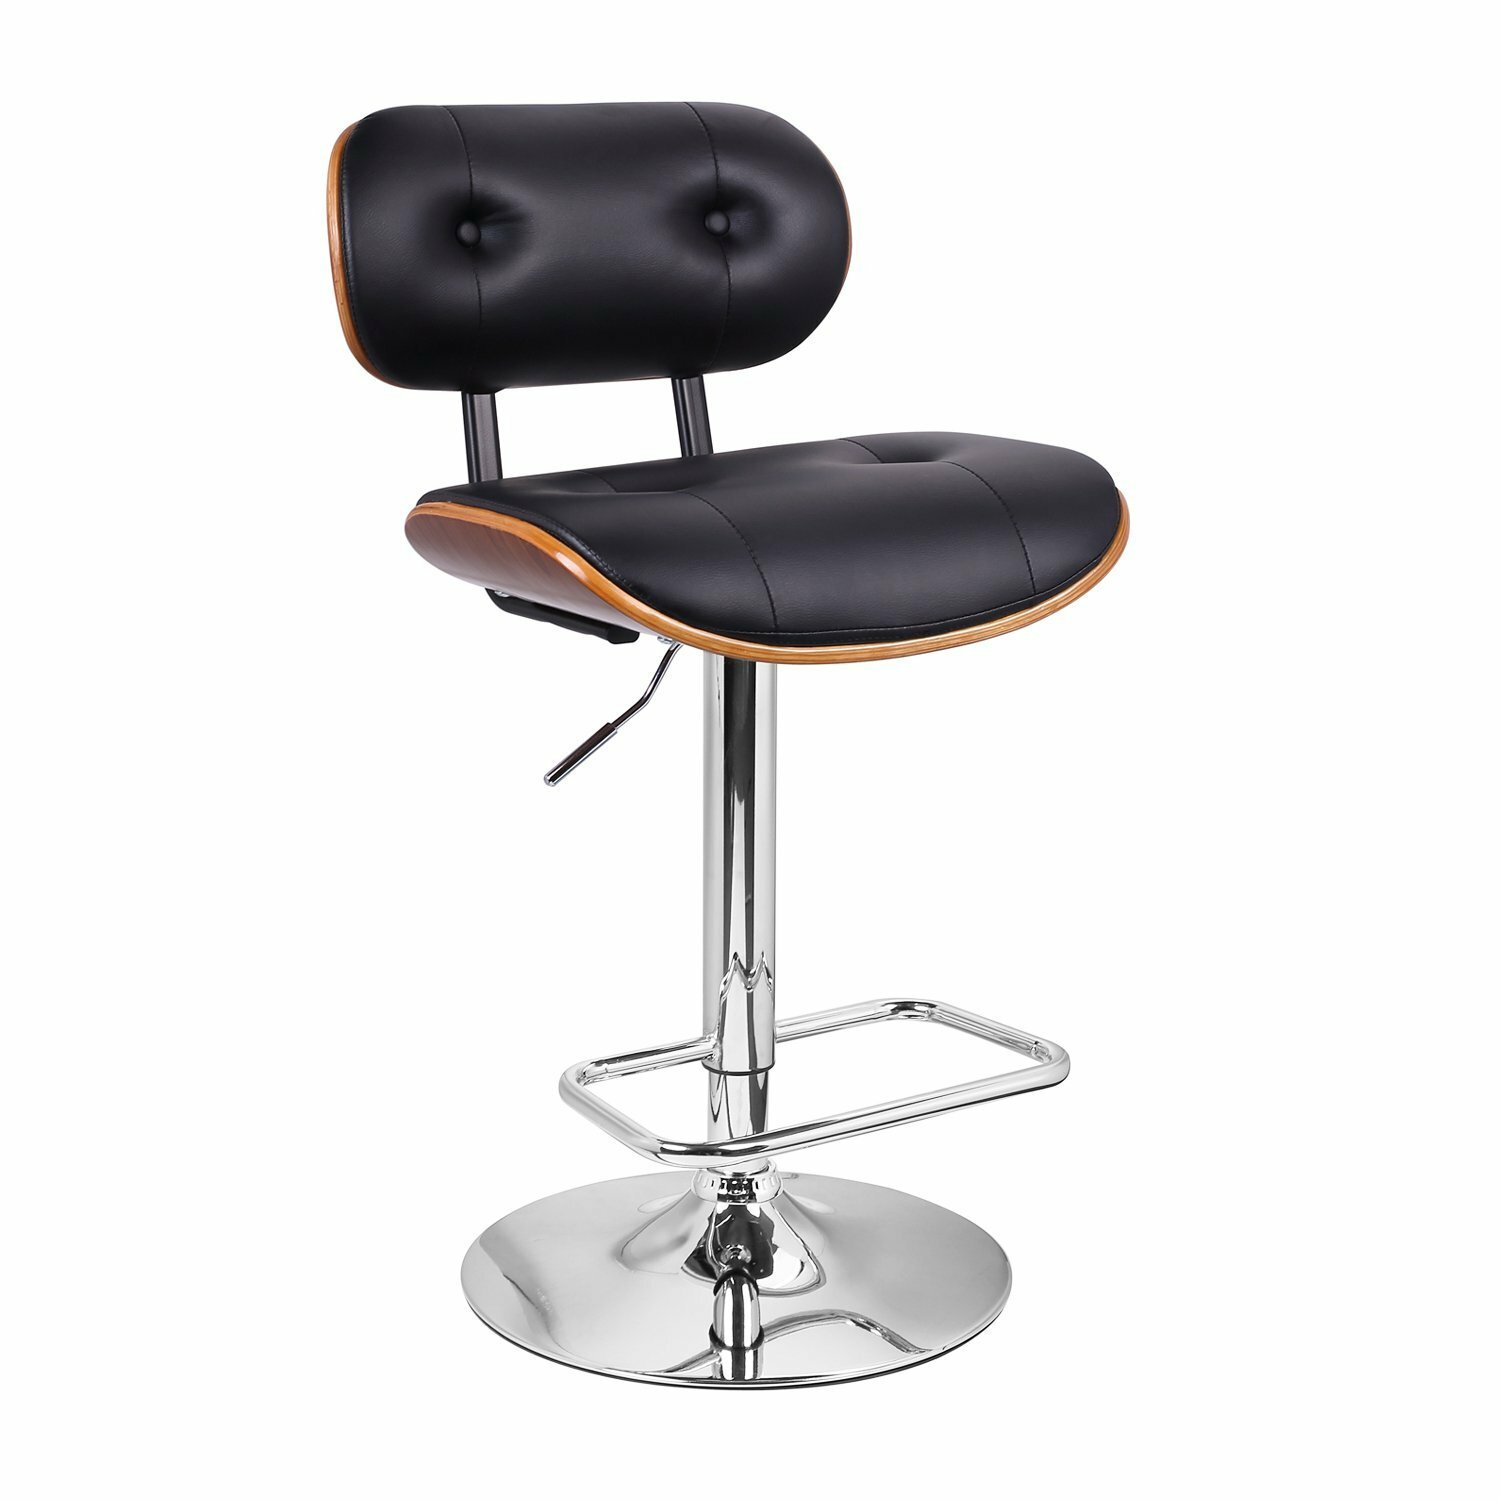 Adjustable Height Swivel Bar Stool by AdecoTrading